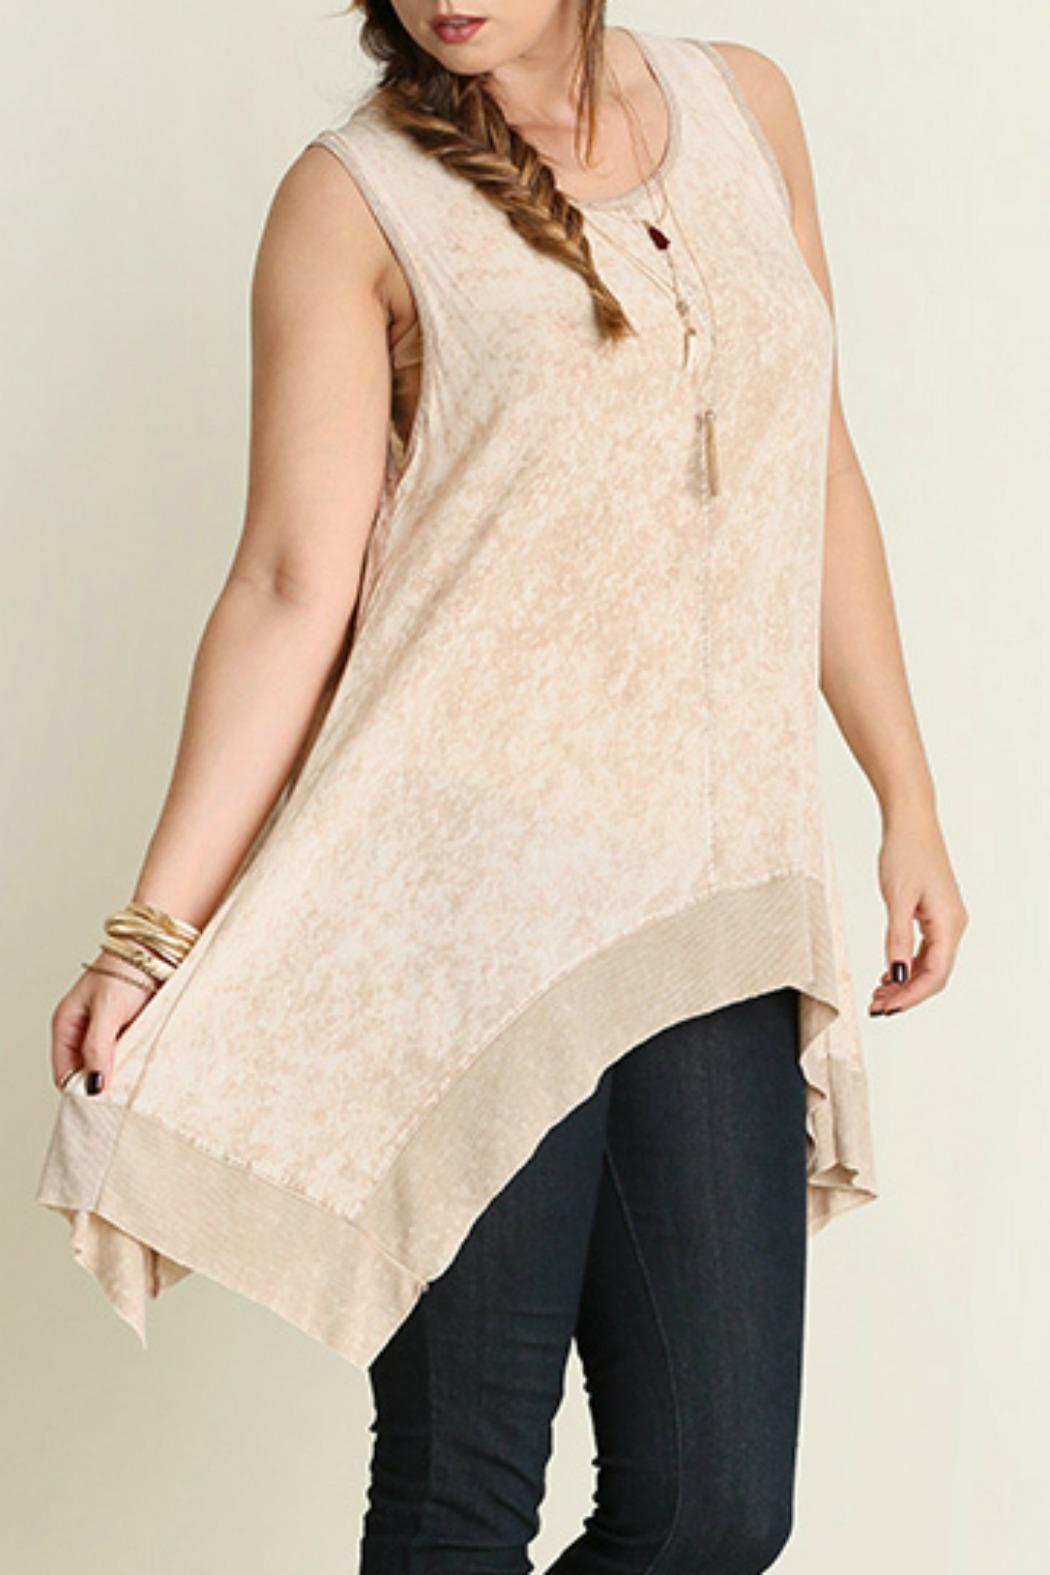 Umgee USA Tunic Tank Top - Main Image